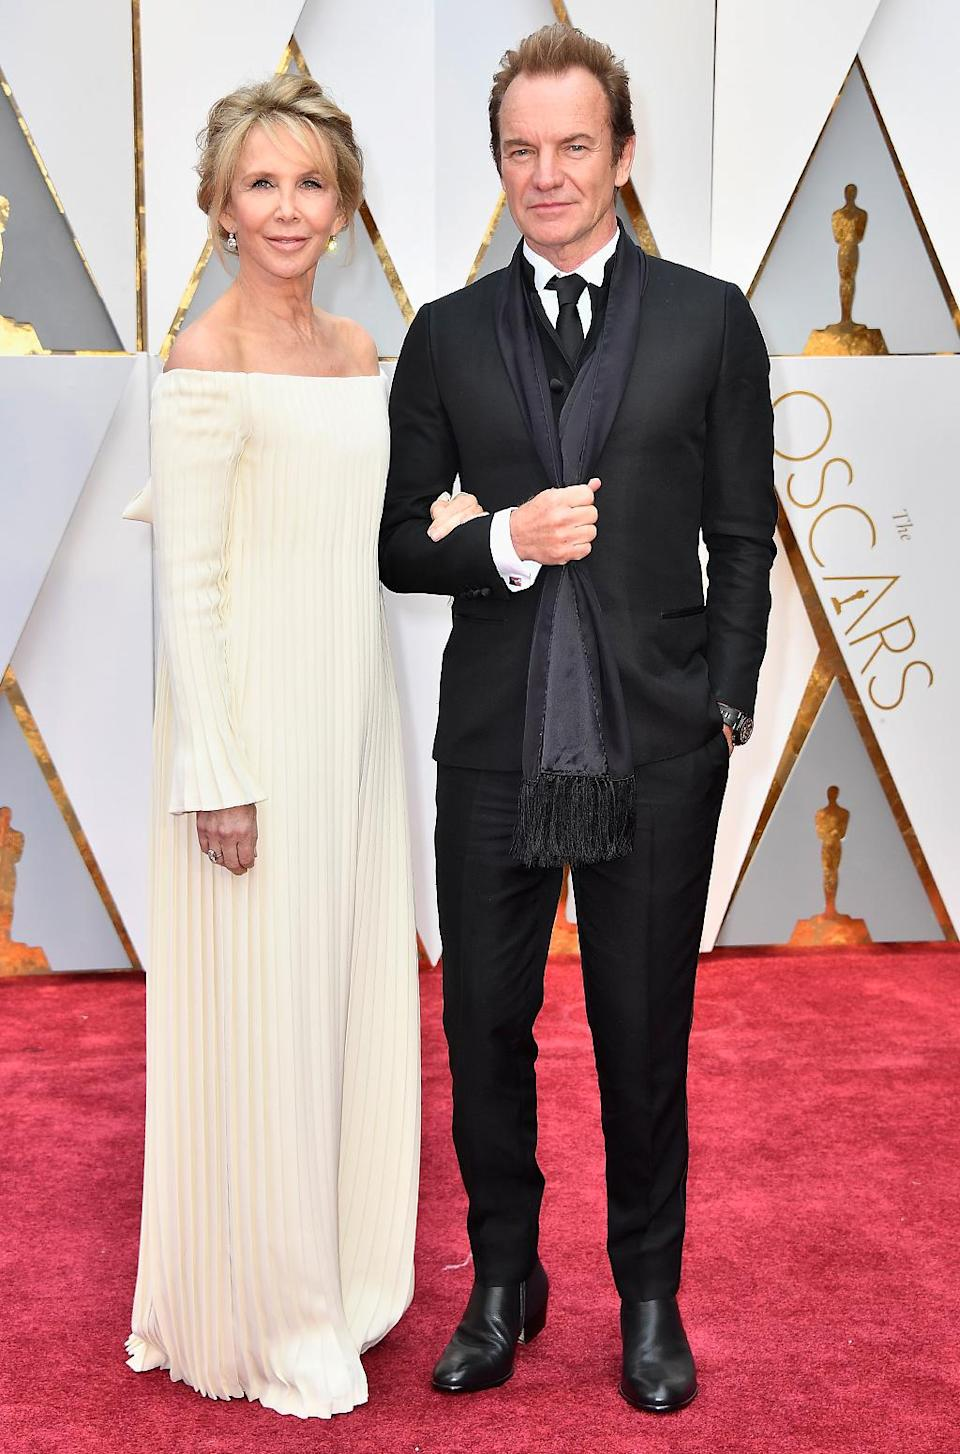 <p>Producer Trudie Styler and musician Sting attend the 89th Annual Academy Awards at Hollywood & Highland Center on February 26, 2017 in Hollywood, California. (Photo by Frazer Harrison/Getty Images) </p>